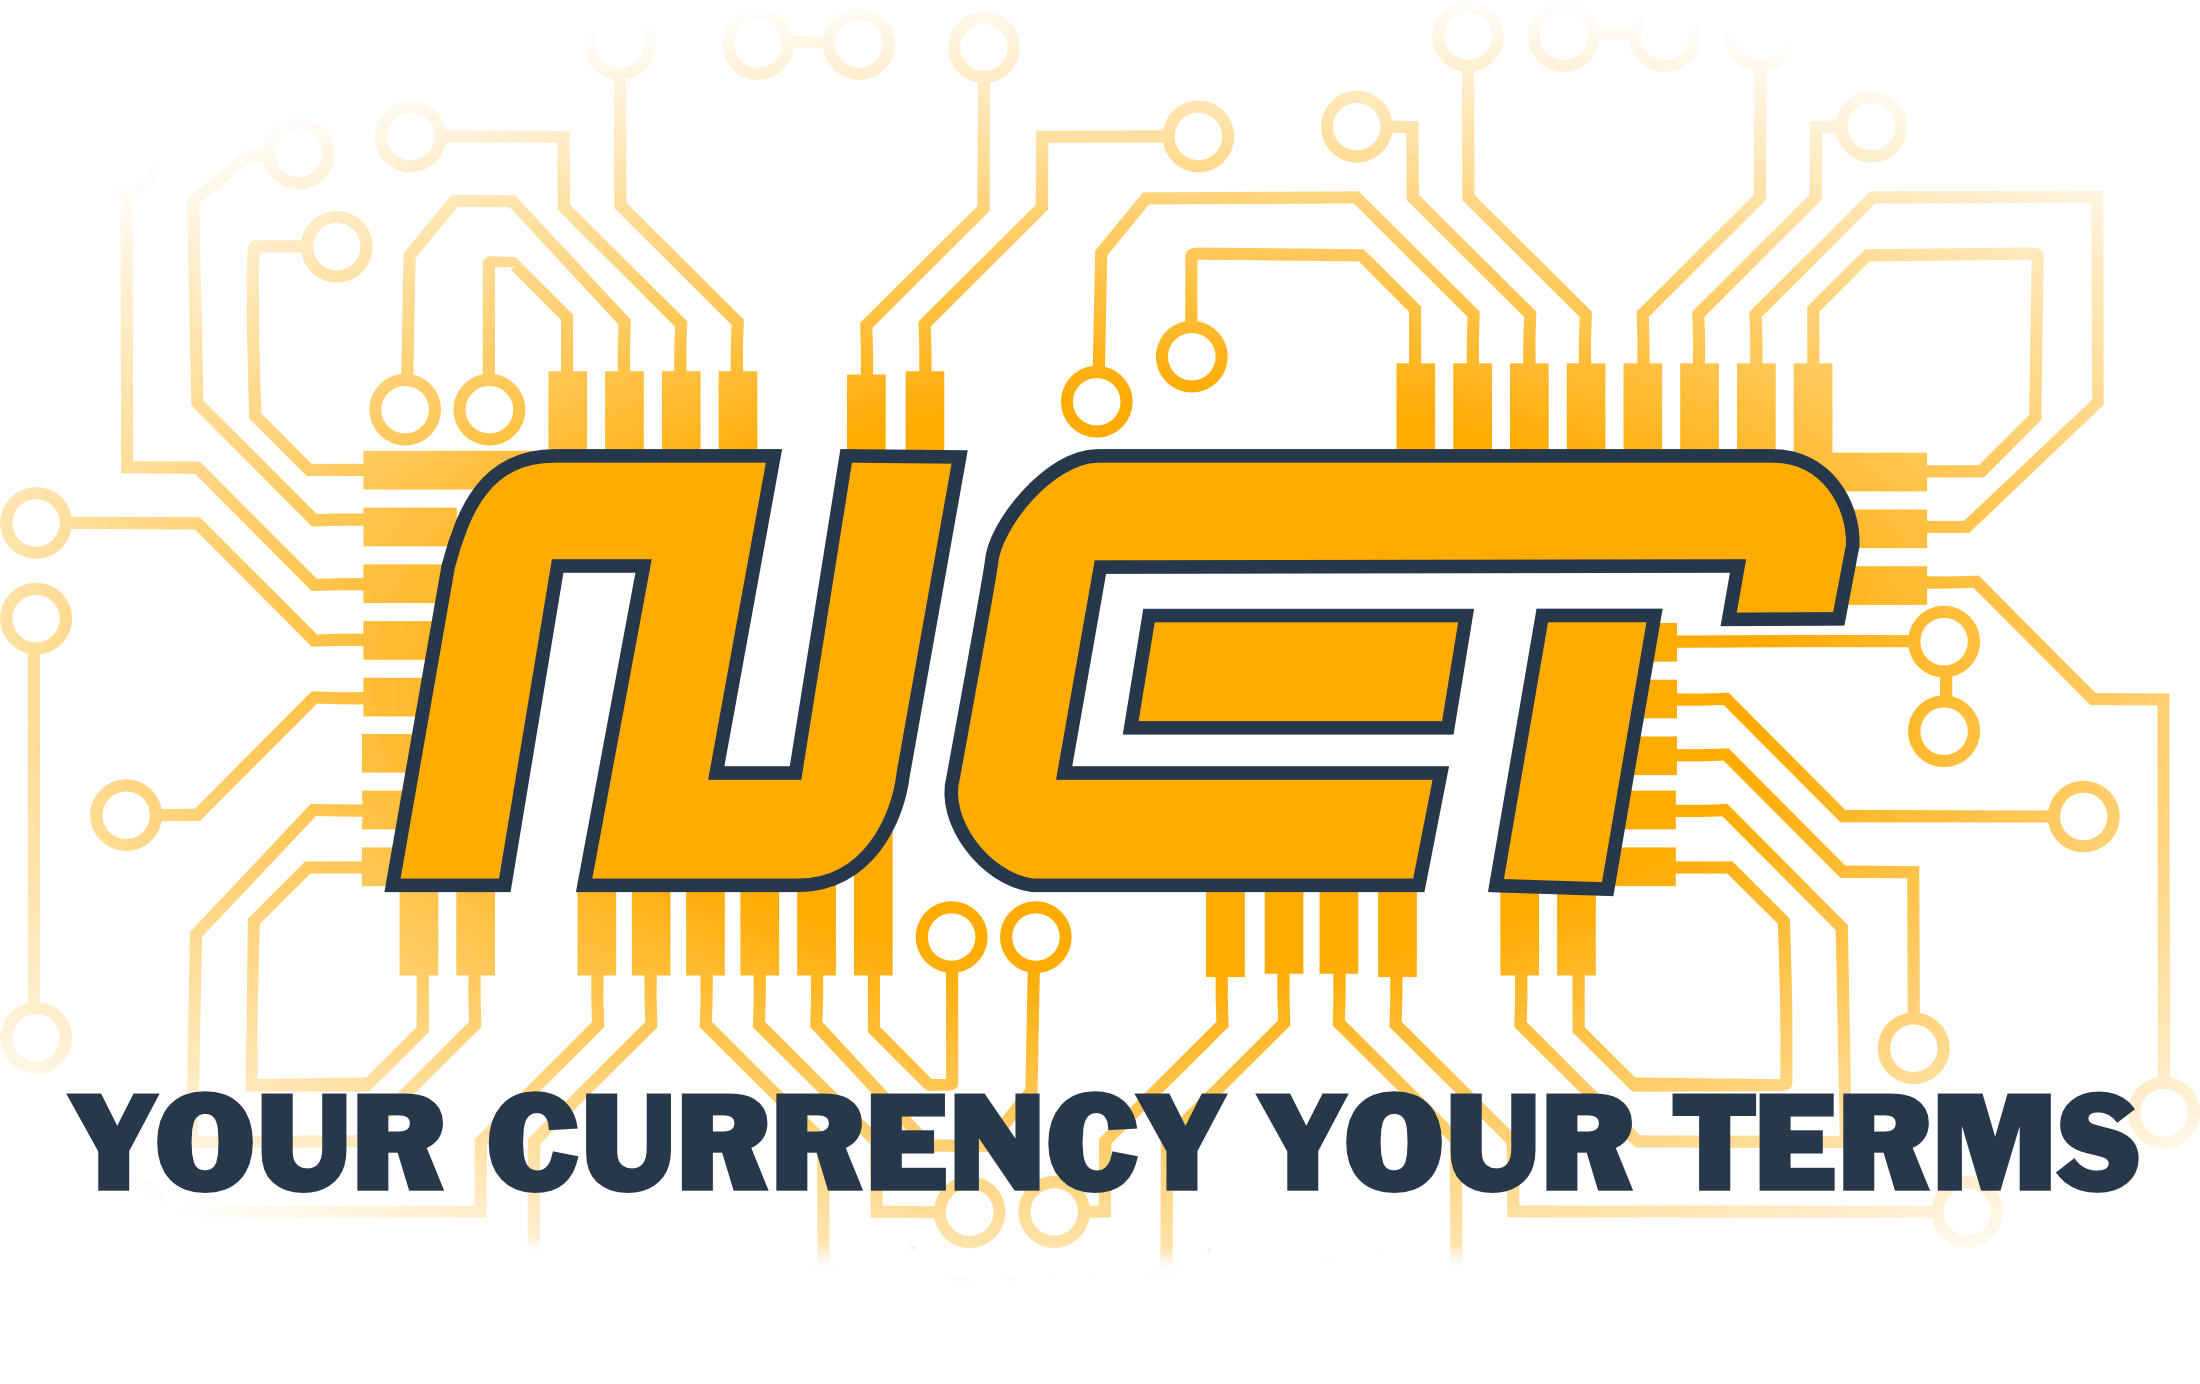 Netcoin, Bitcoin, Blockchain, Cryptocurrency